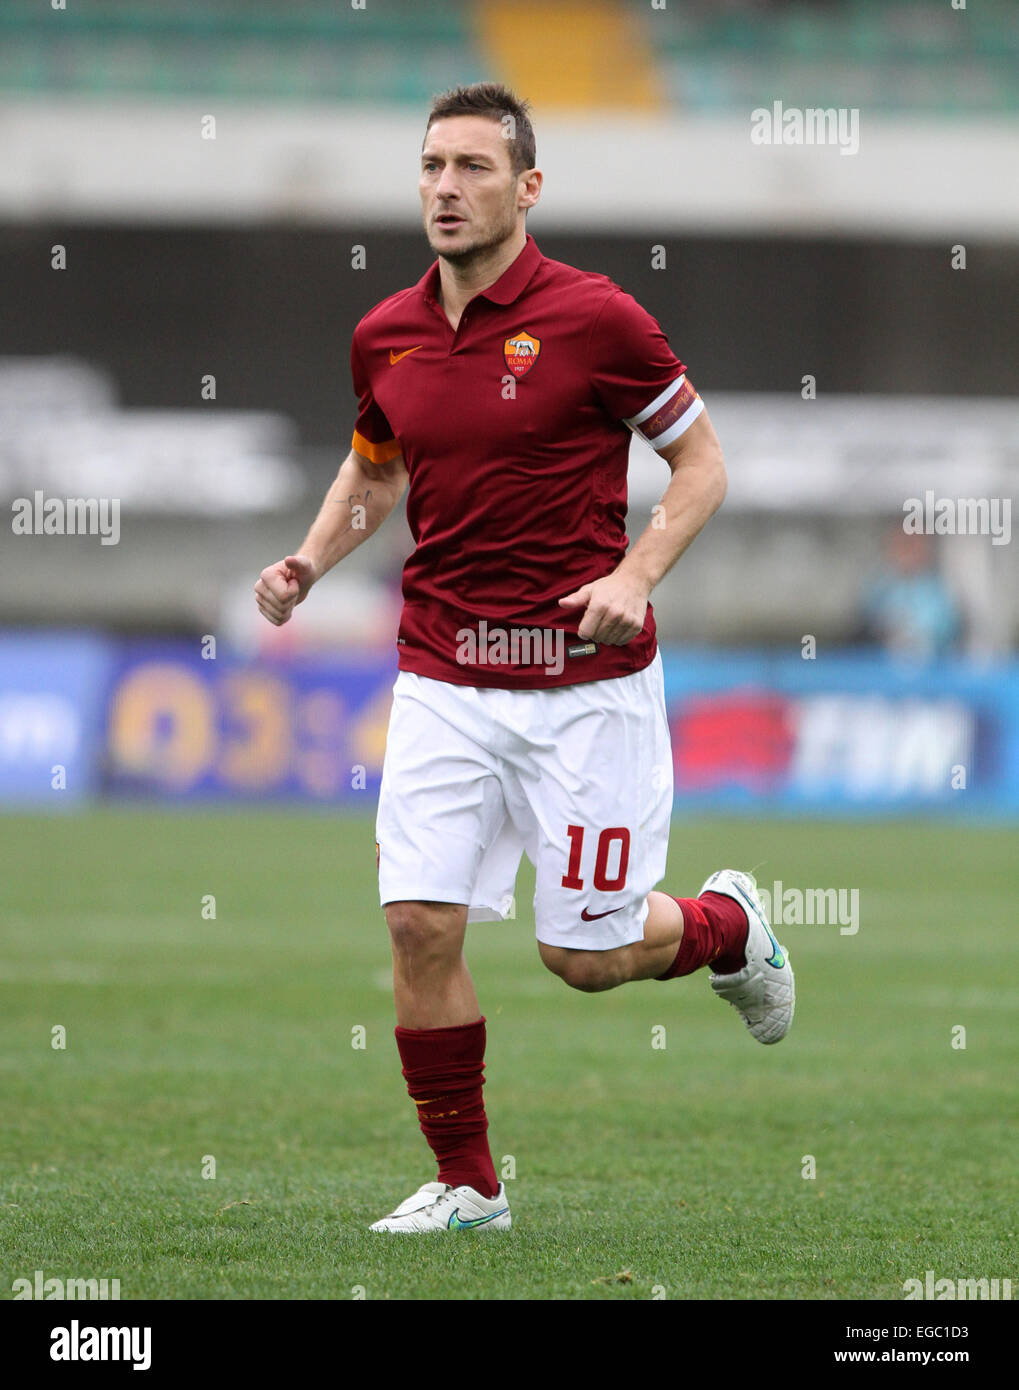 Verona, Italy. 22nd February, 2015. Roma's forward Francesco Totti during the Italian Serie A football match - Stock Image